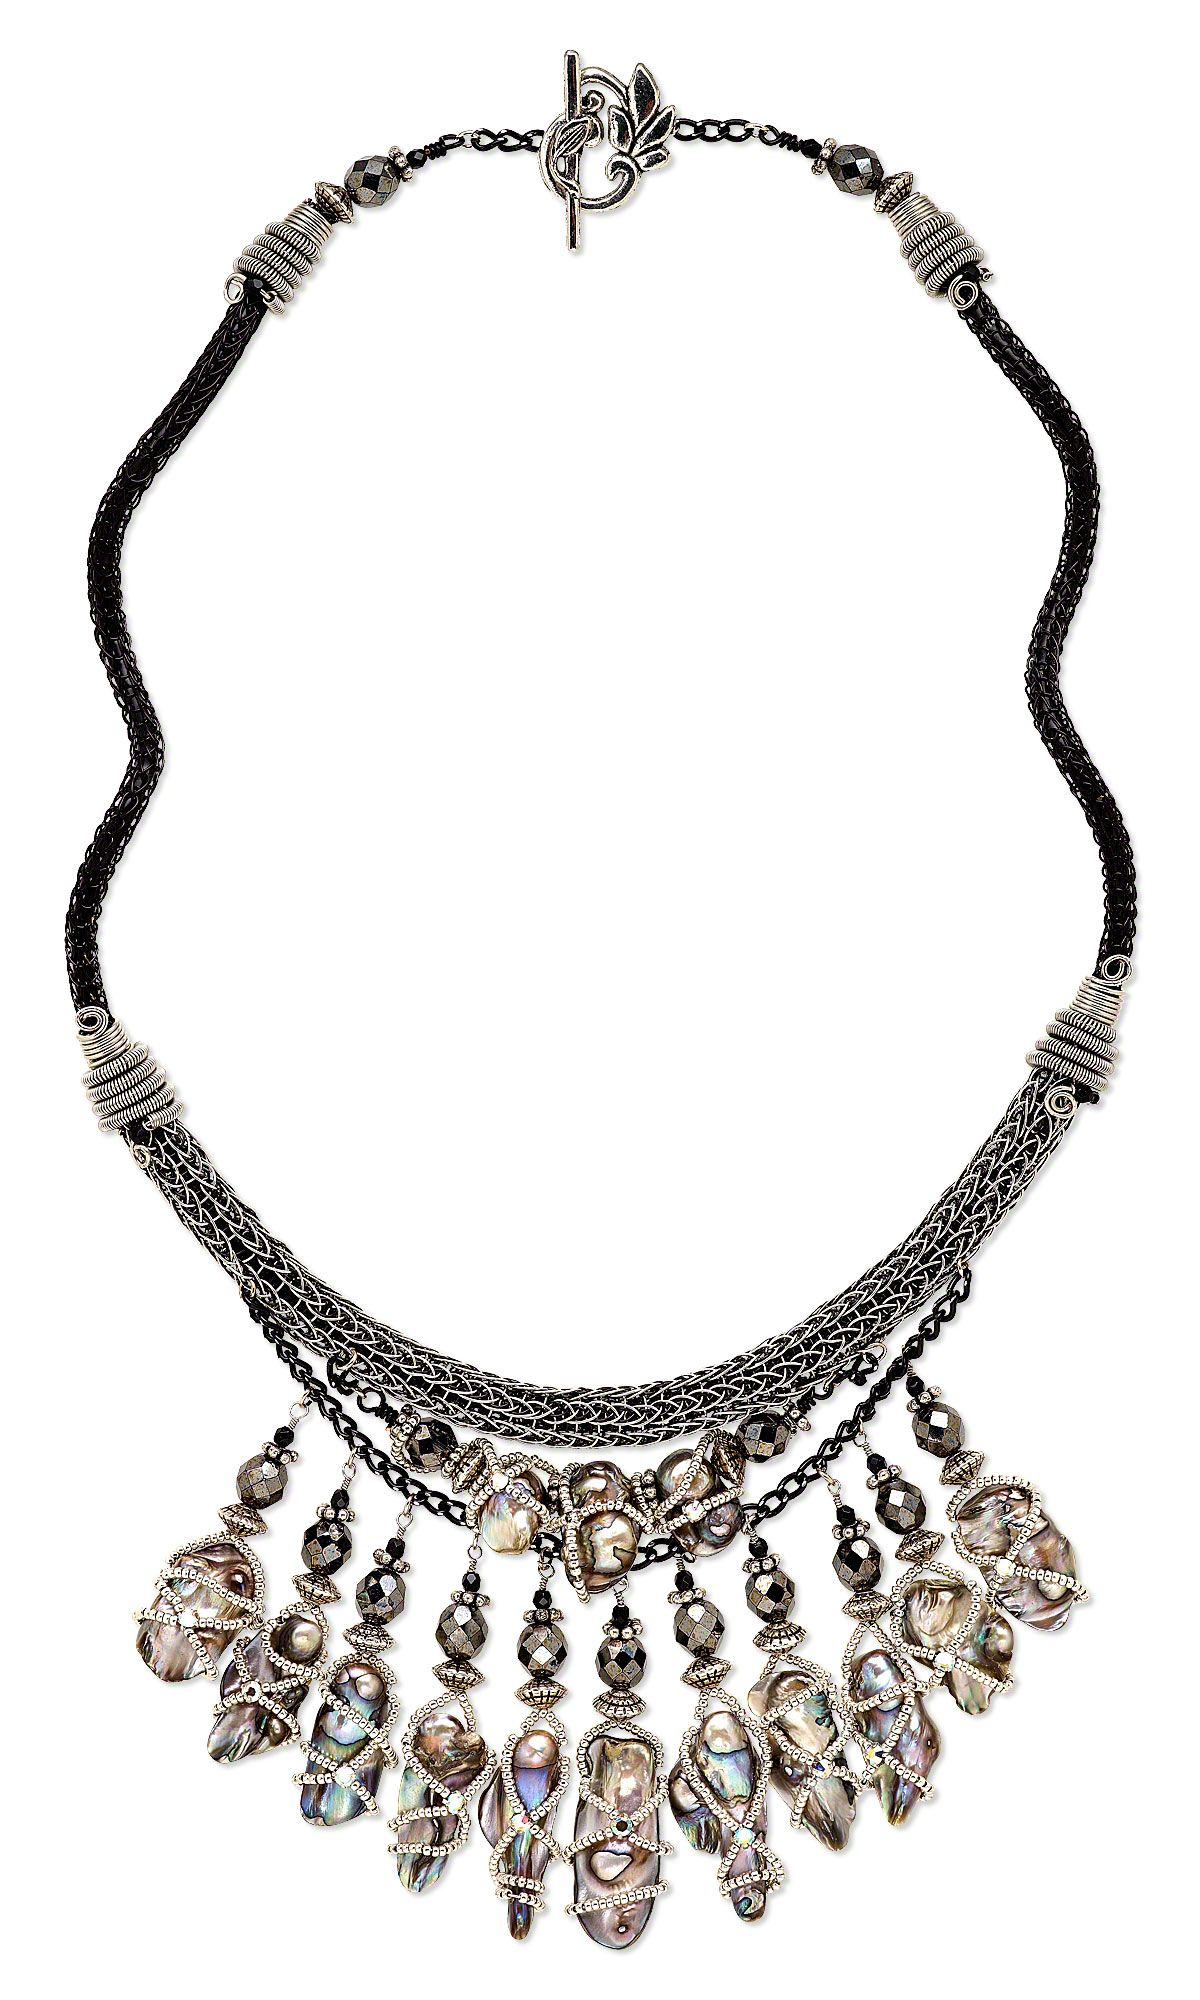 Jewelry Design - Triple-Strand Necklace with Cultured Freshwater ...